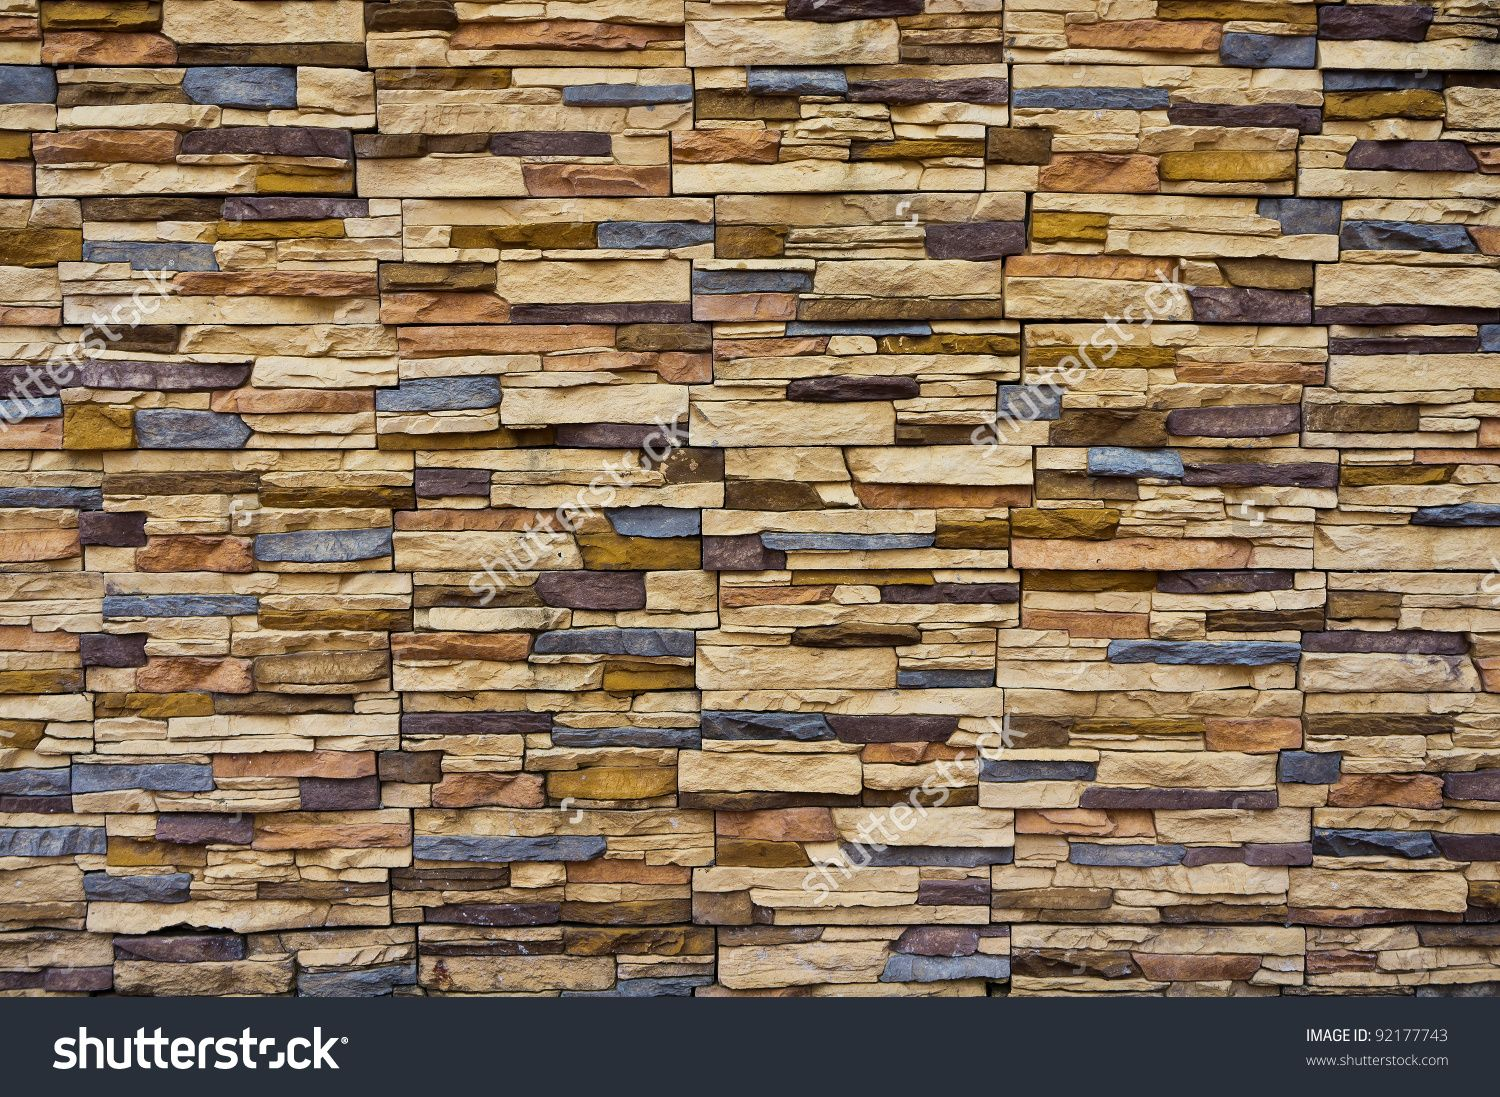 Uncategorized Modern Brick Walls modern rough brick texture wall stock photo 92177743 shutterstock